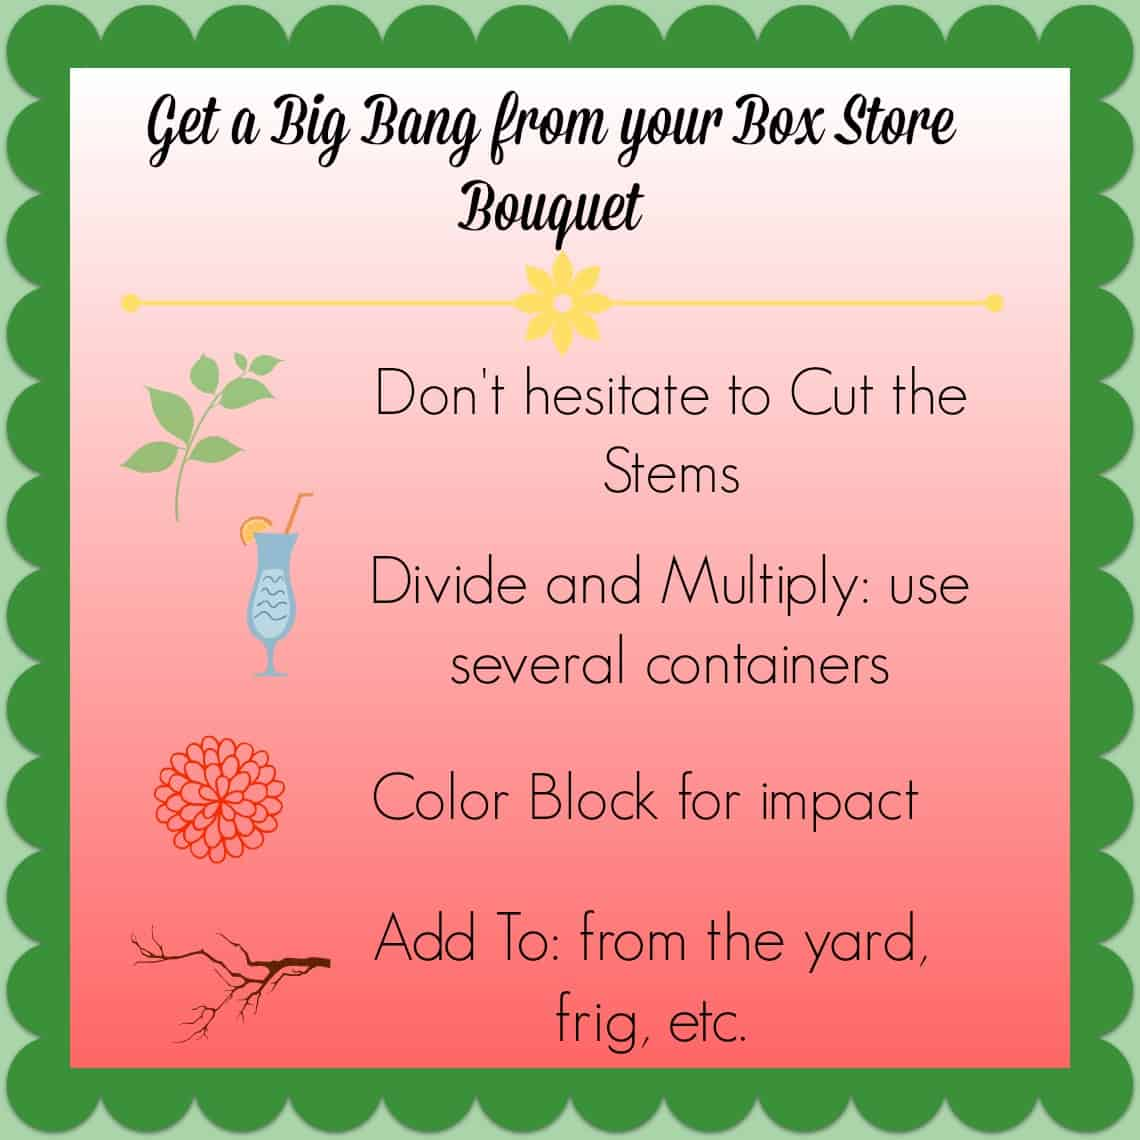 Tips for maximizing a grocery store bouquet